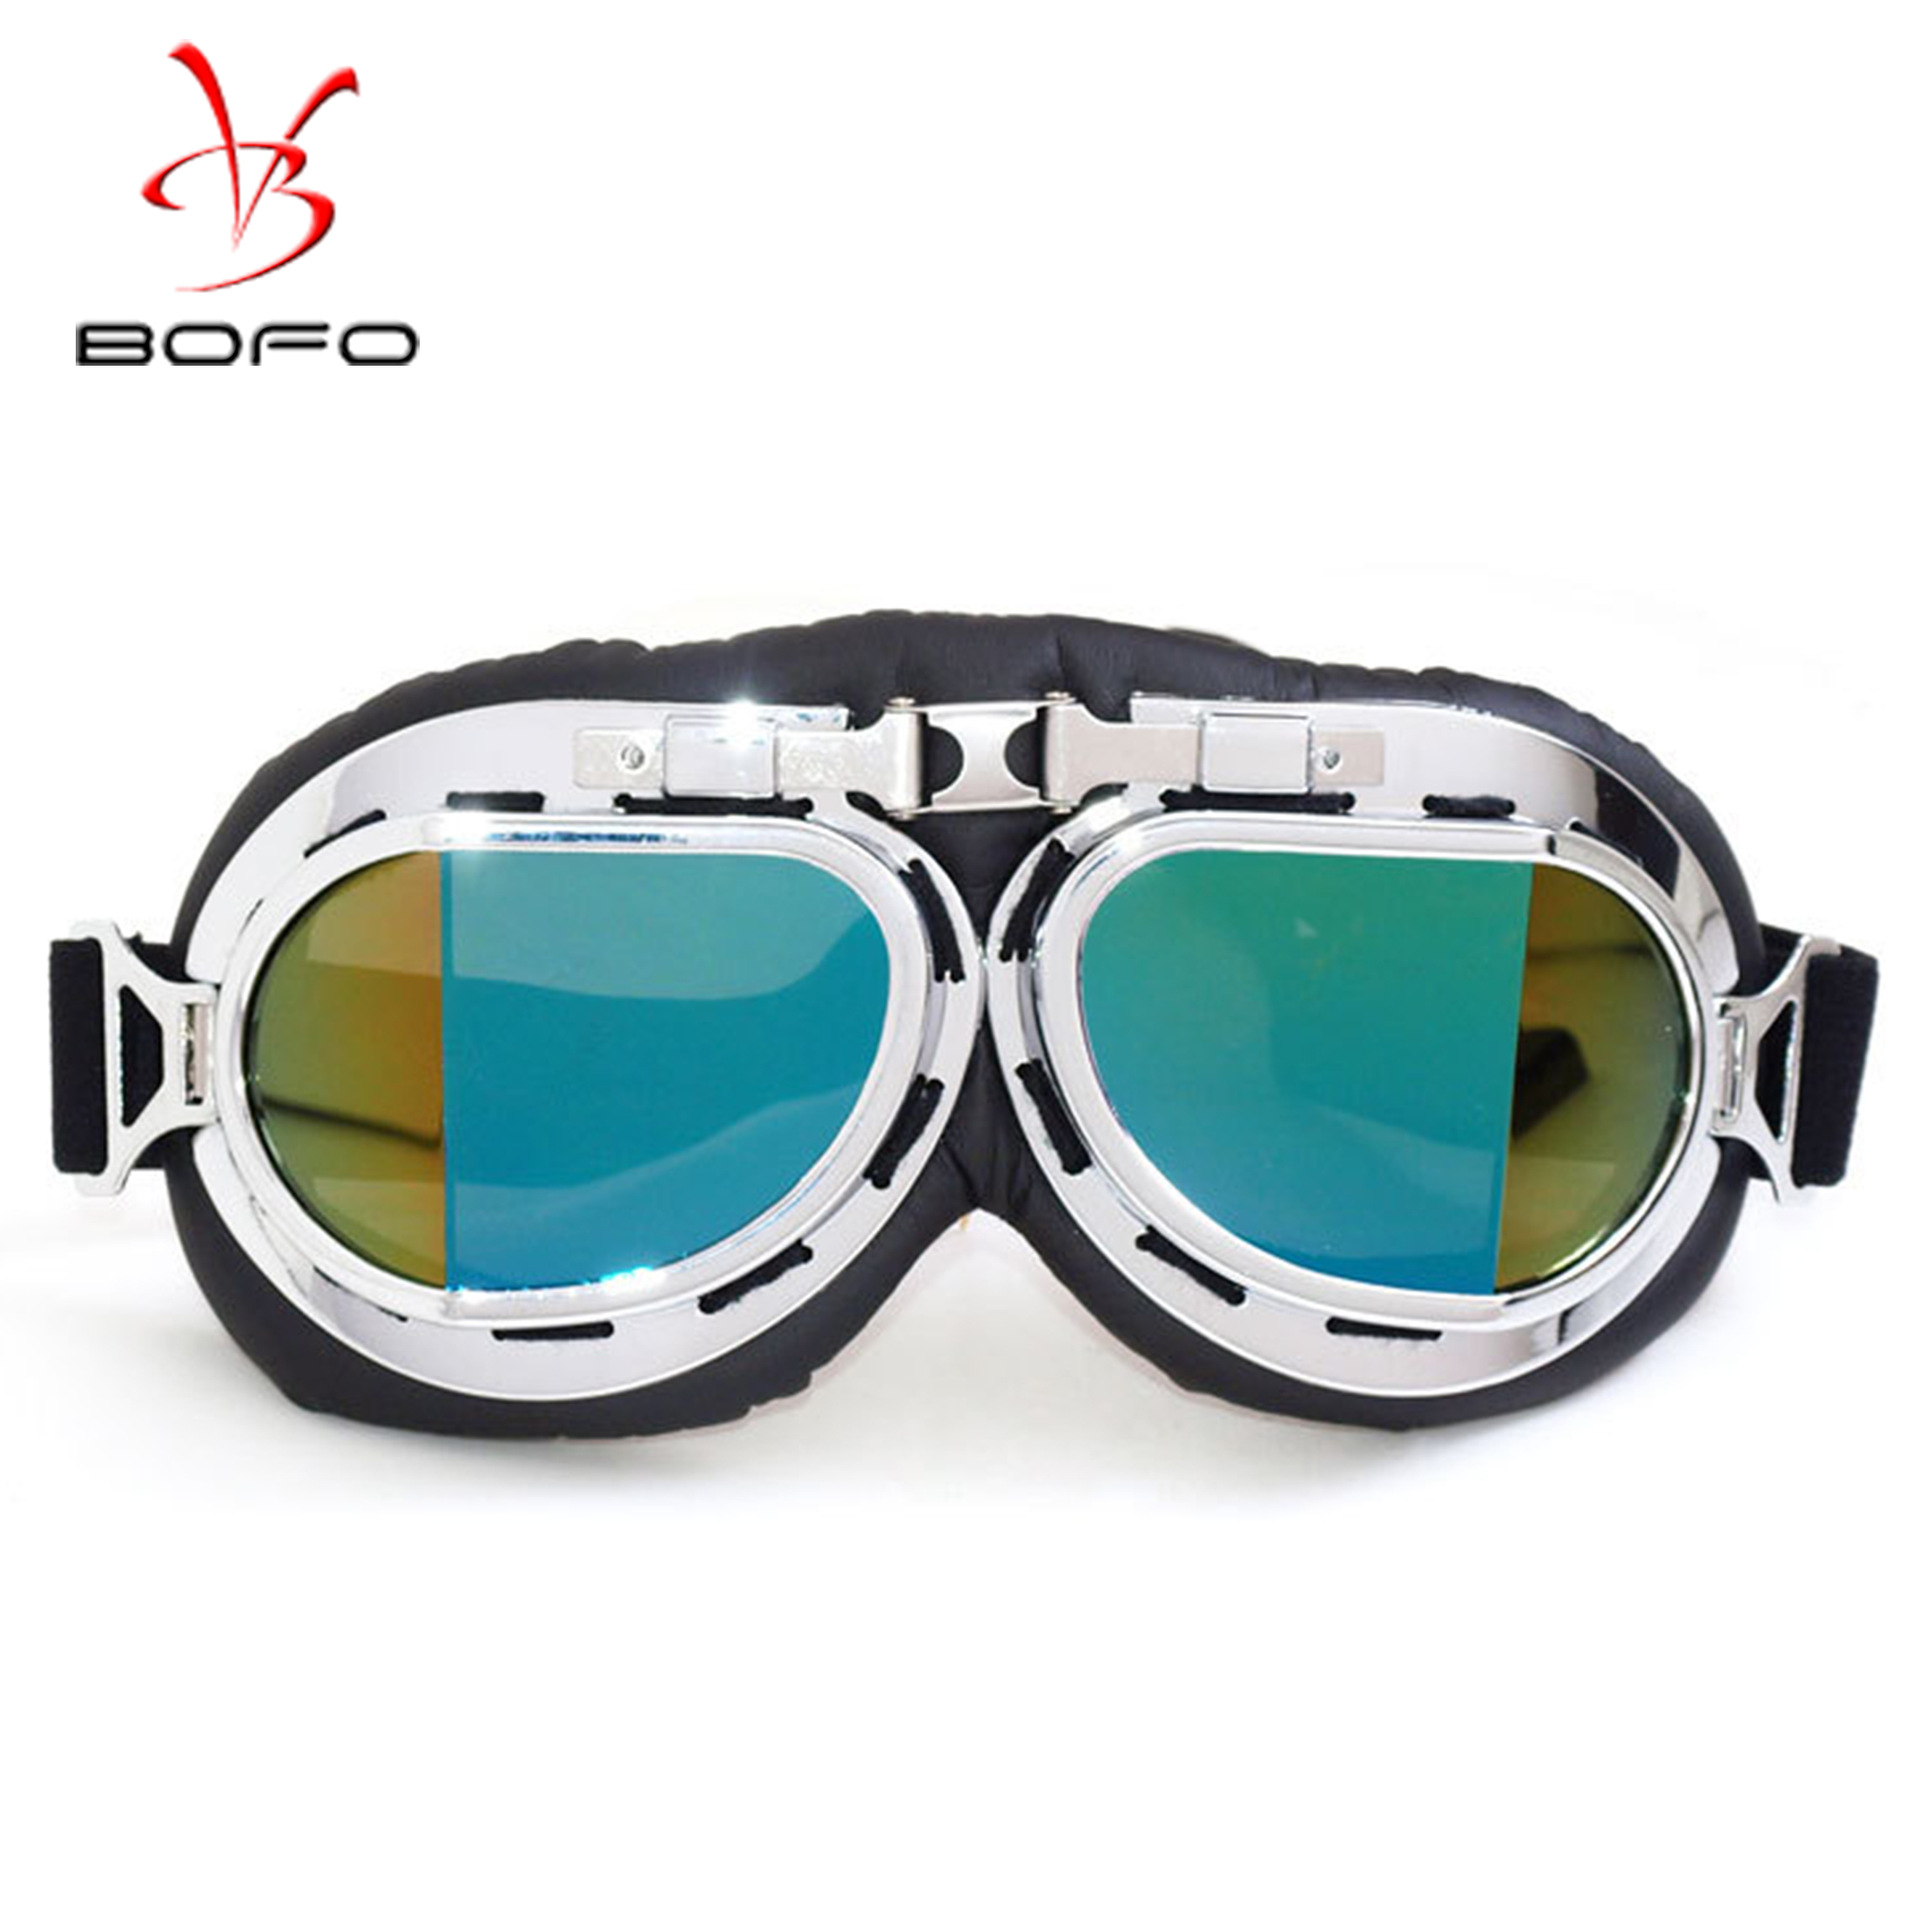 Harley Goggles Retro World War II Goggles Harley Goggles For Motorcycle Windproof Sand Labor Glasses Off-road Helmet Goggles